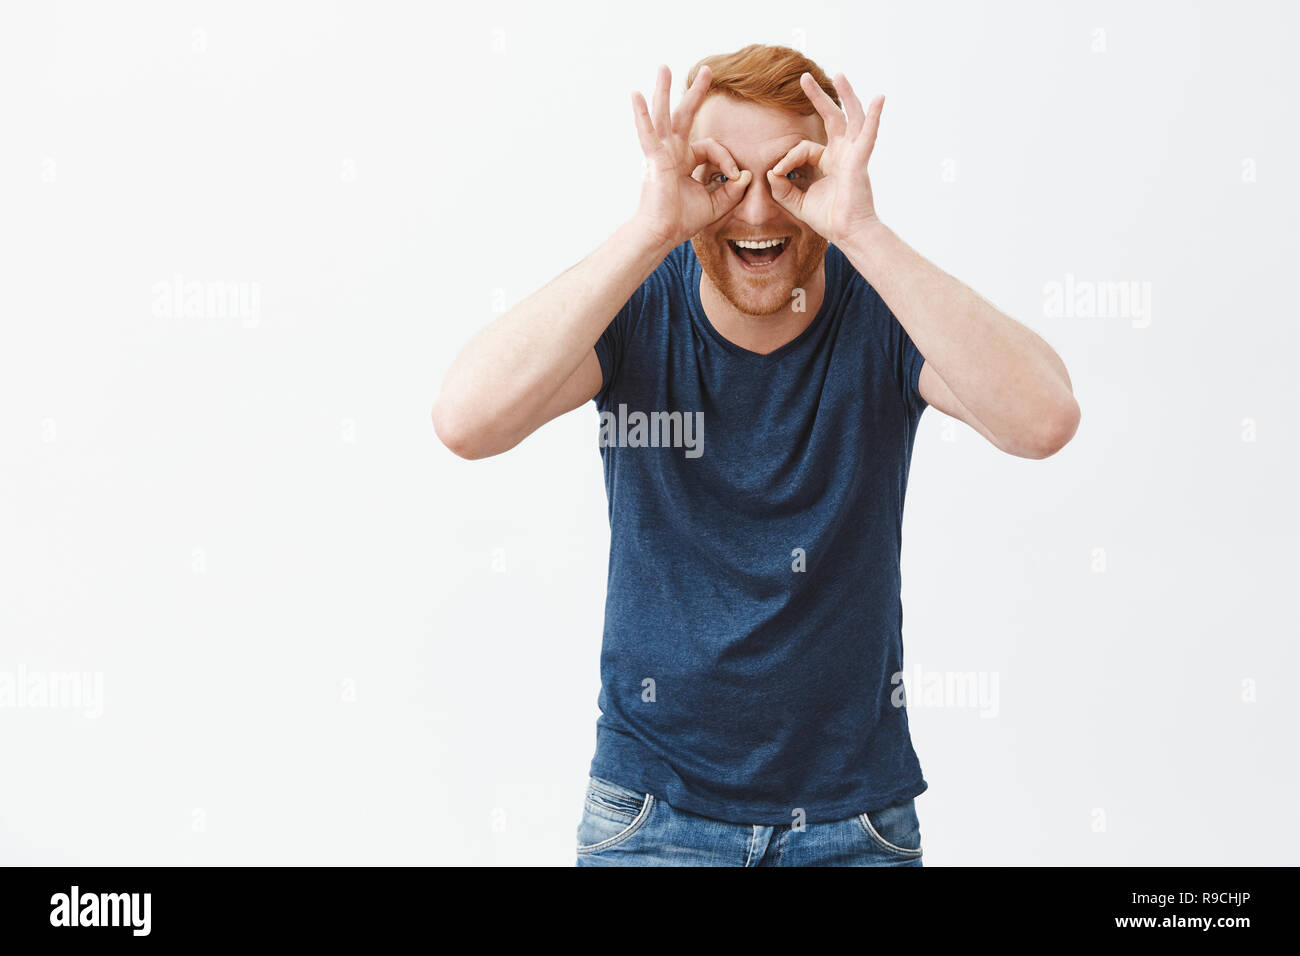 Man is large child. Joyful and playful emotive redhead guy with bristle, showing zero or okay gesture over eyes as if looking trought binocular, smiling happily and gazing at camera, having fun - Stock Image